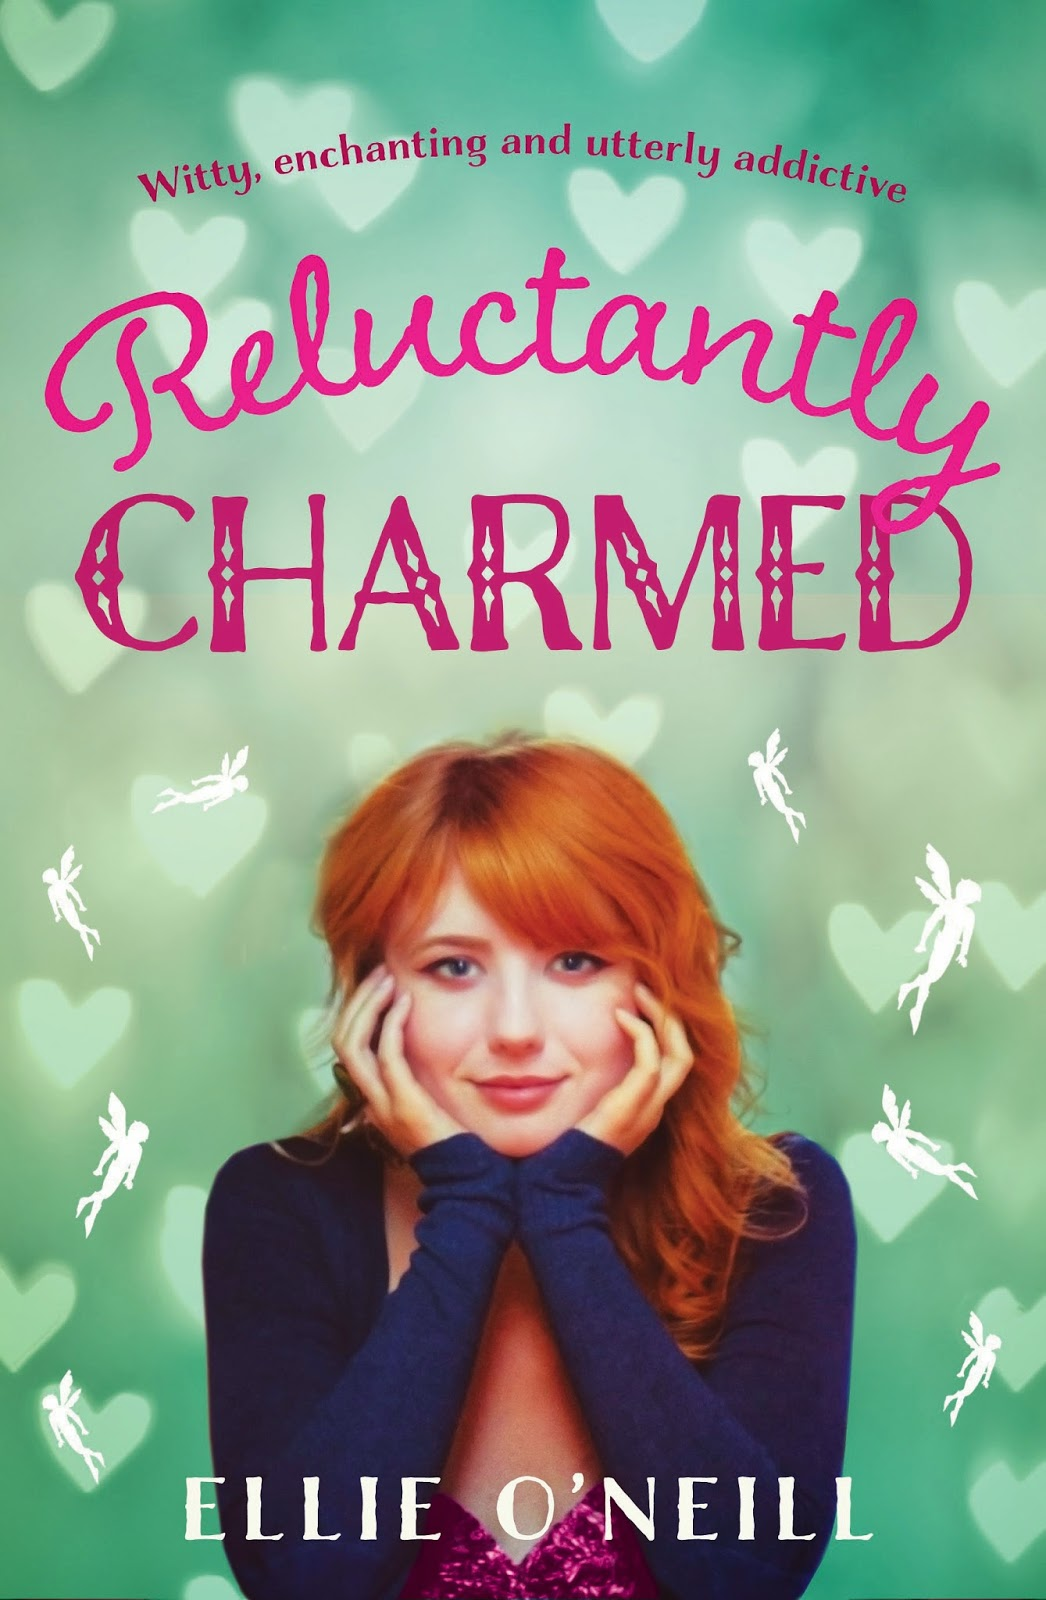 Reluctantly Charmed by Ellie O'Neill book cover